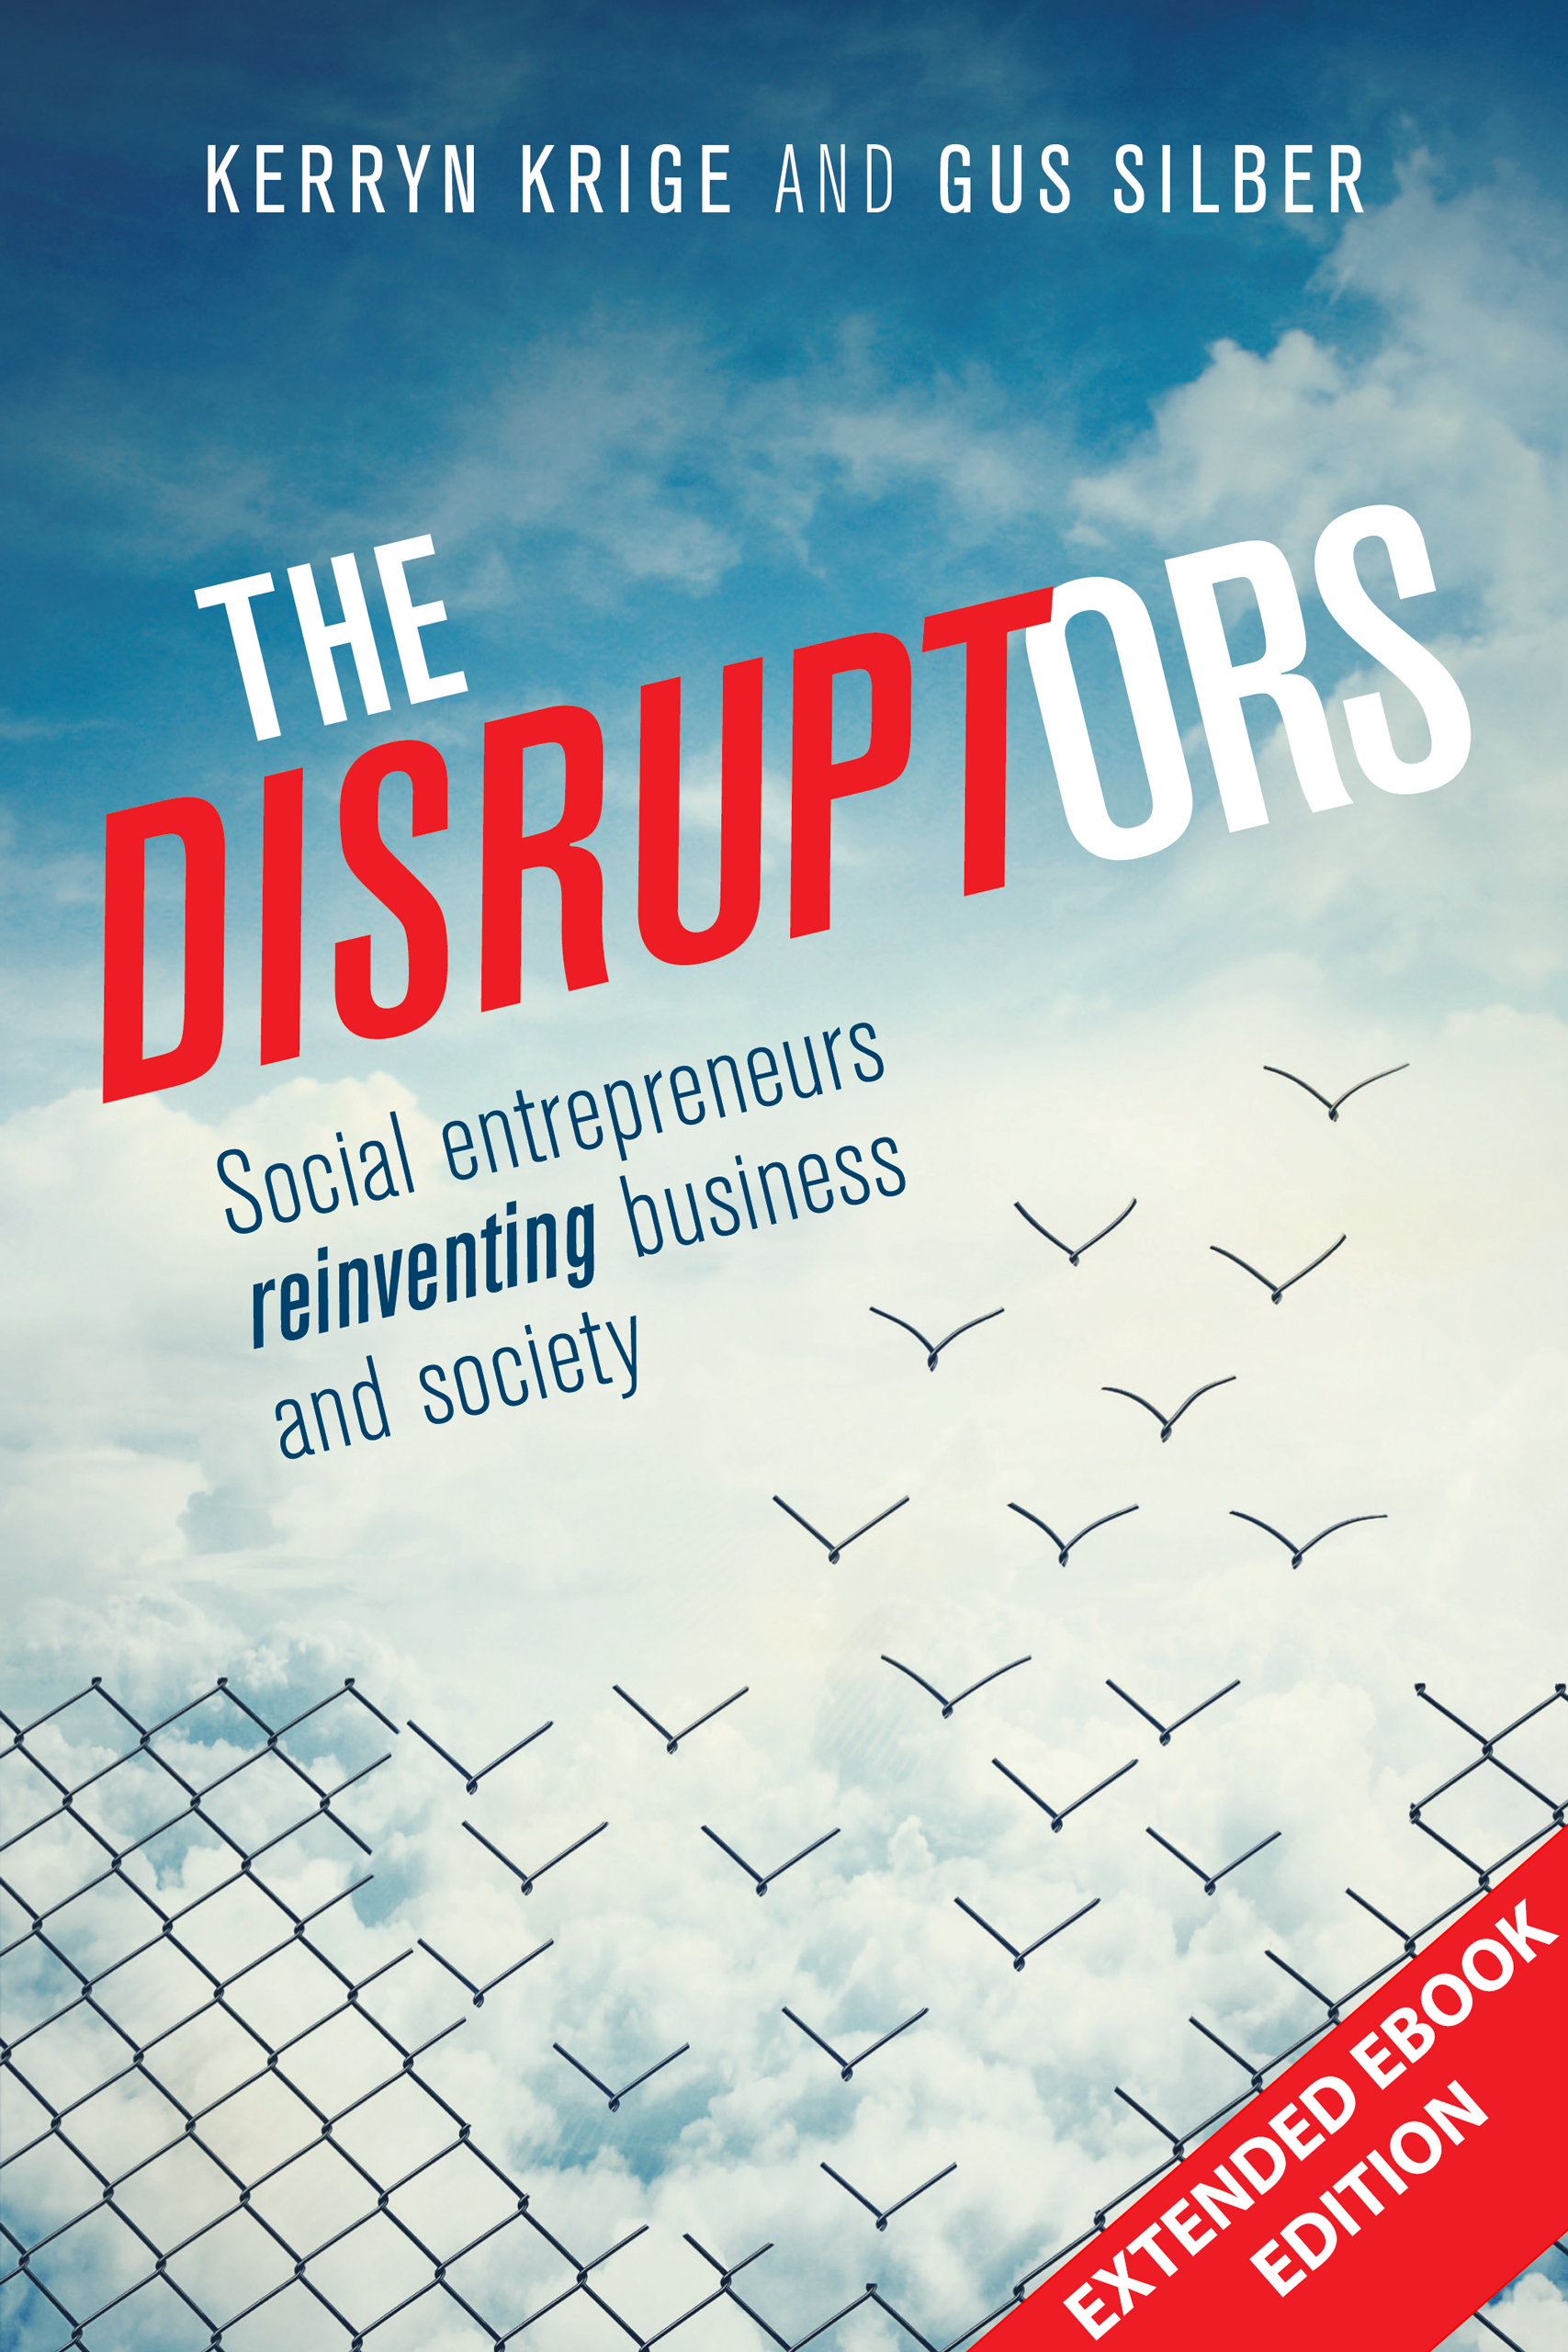 The Disruptors Extended Ebook Edition